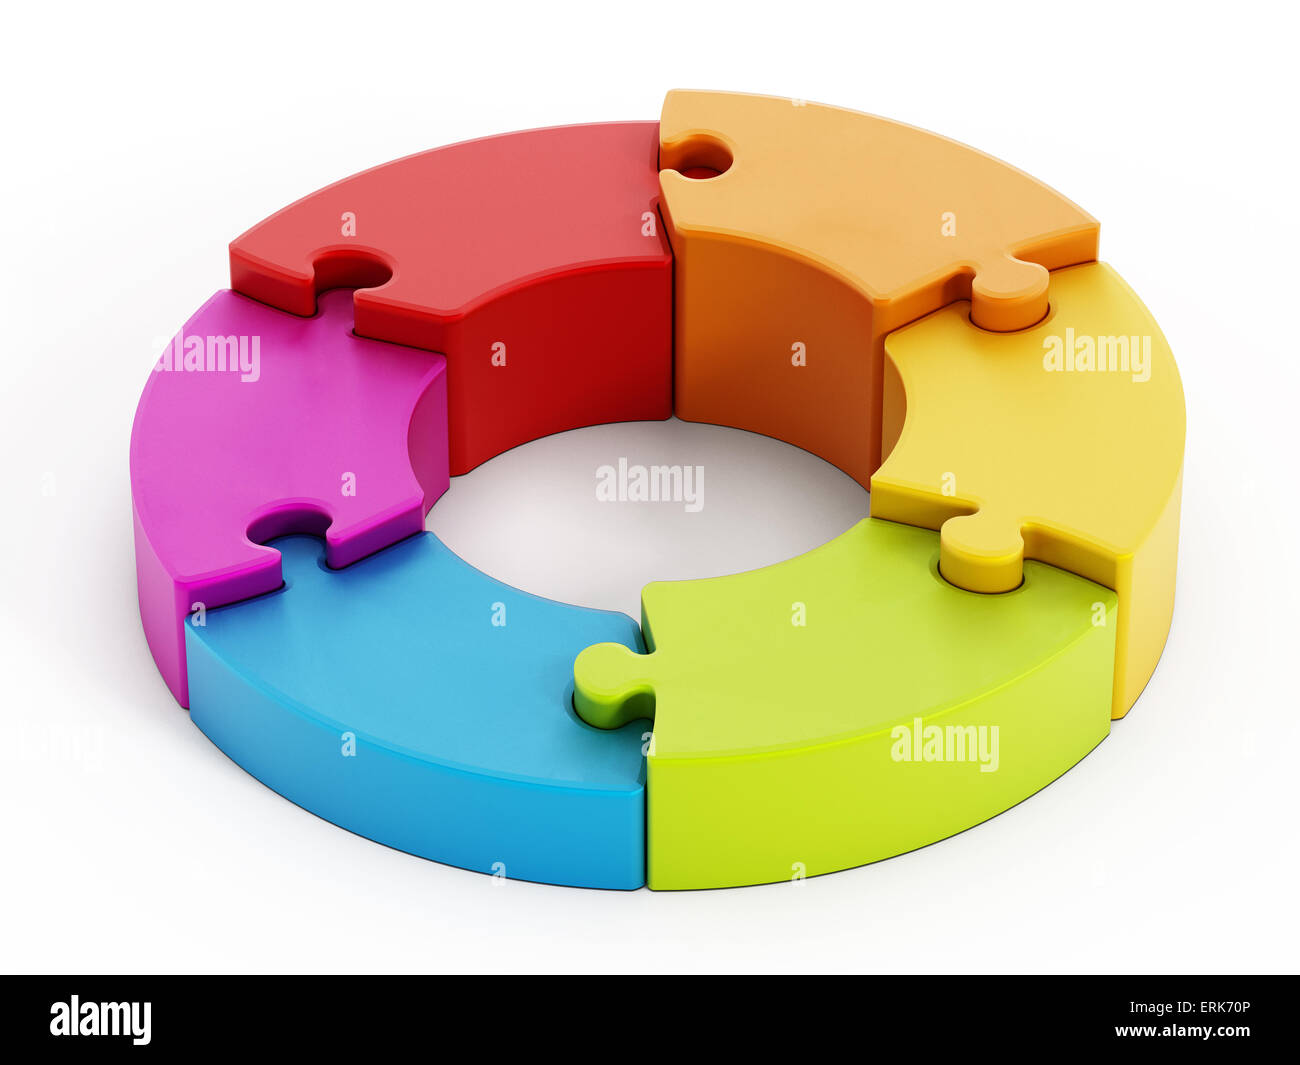 Jigsaw puzzle pieces attached to each other forming a circle. - Stock Image